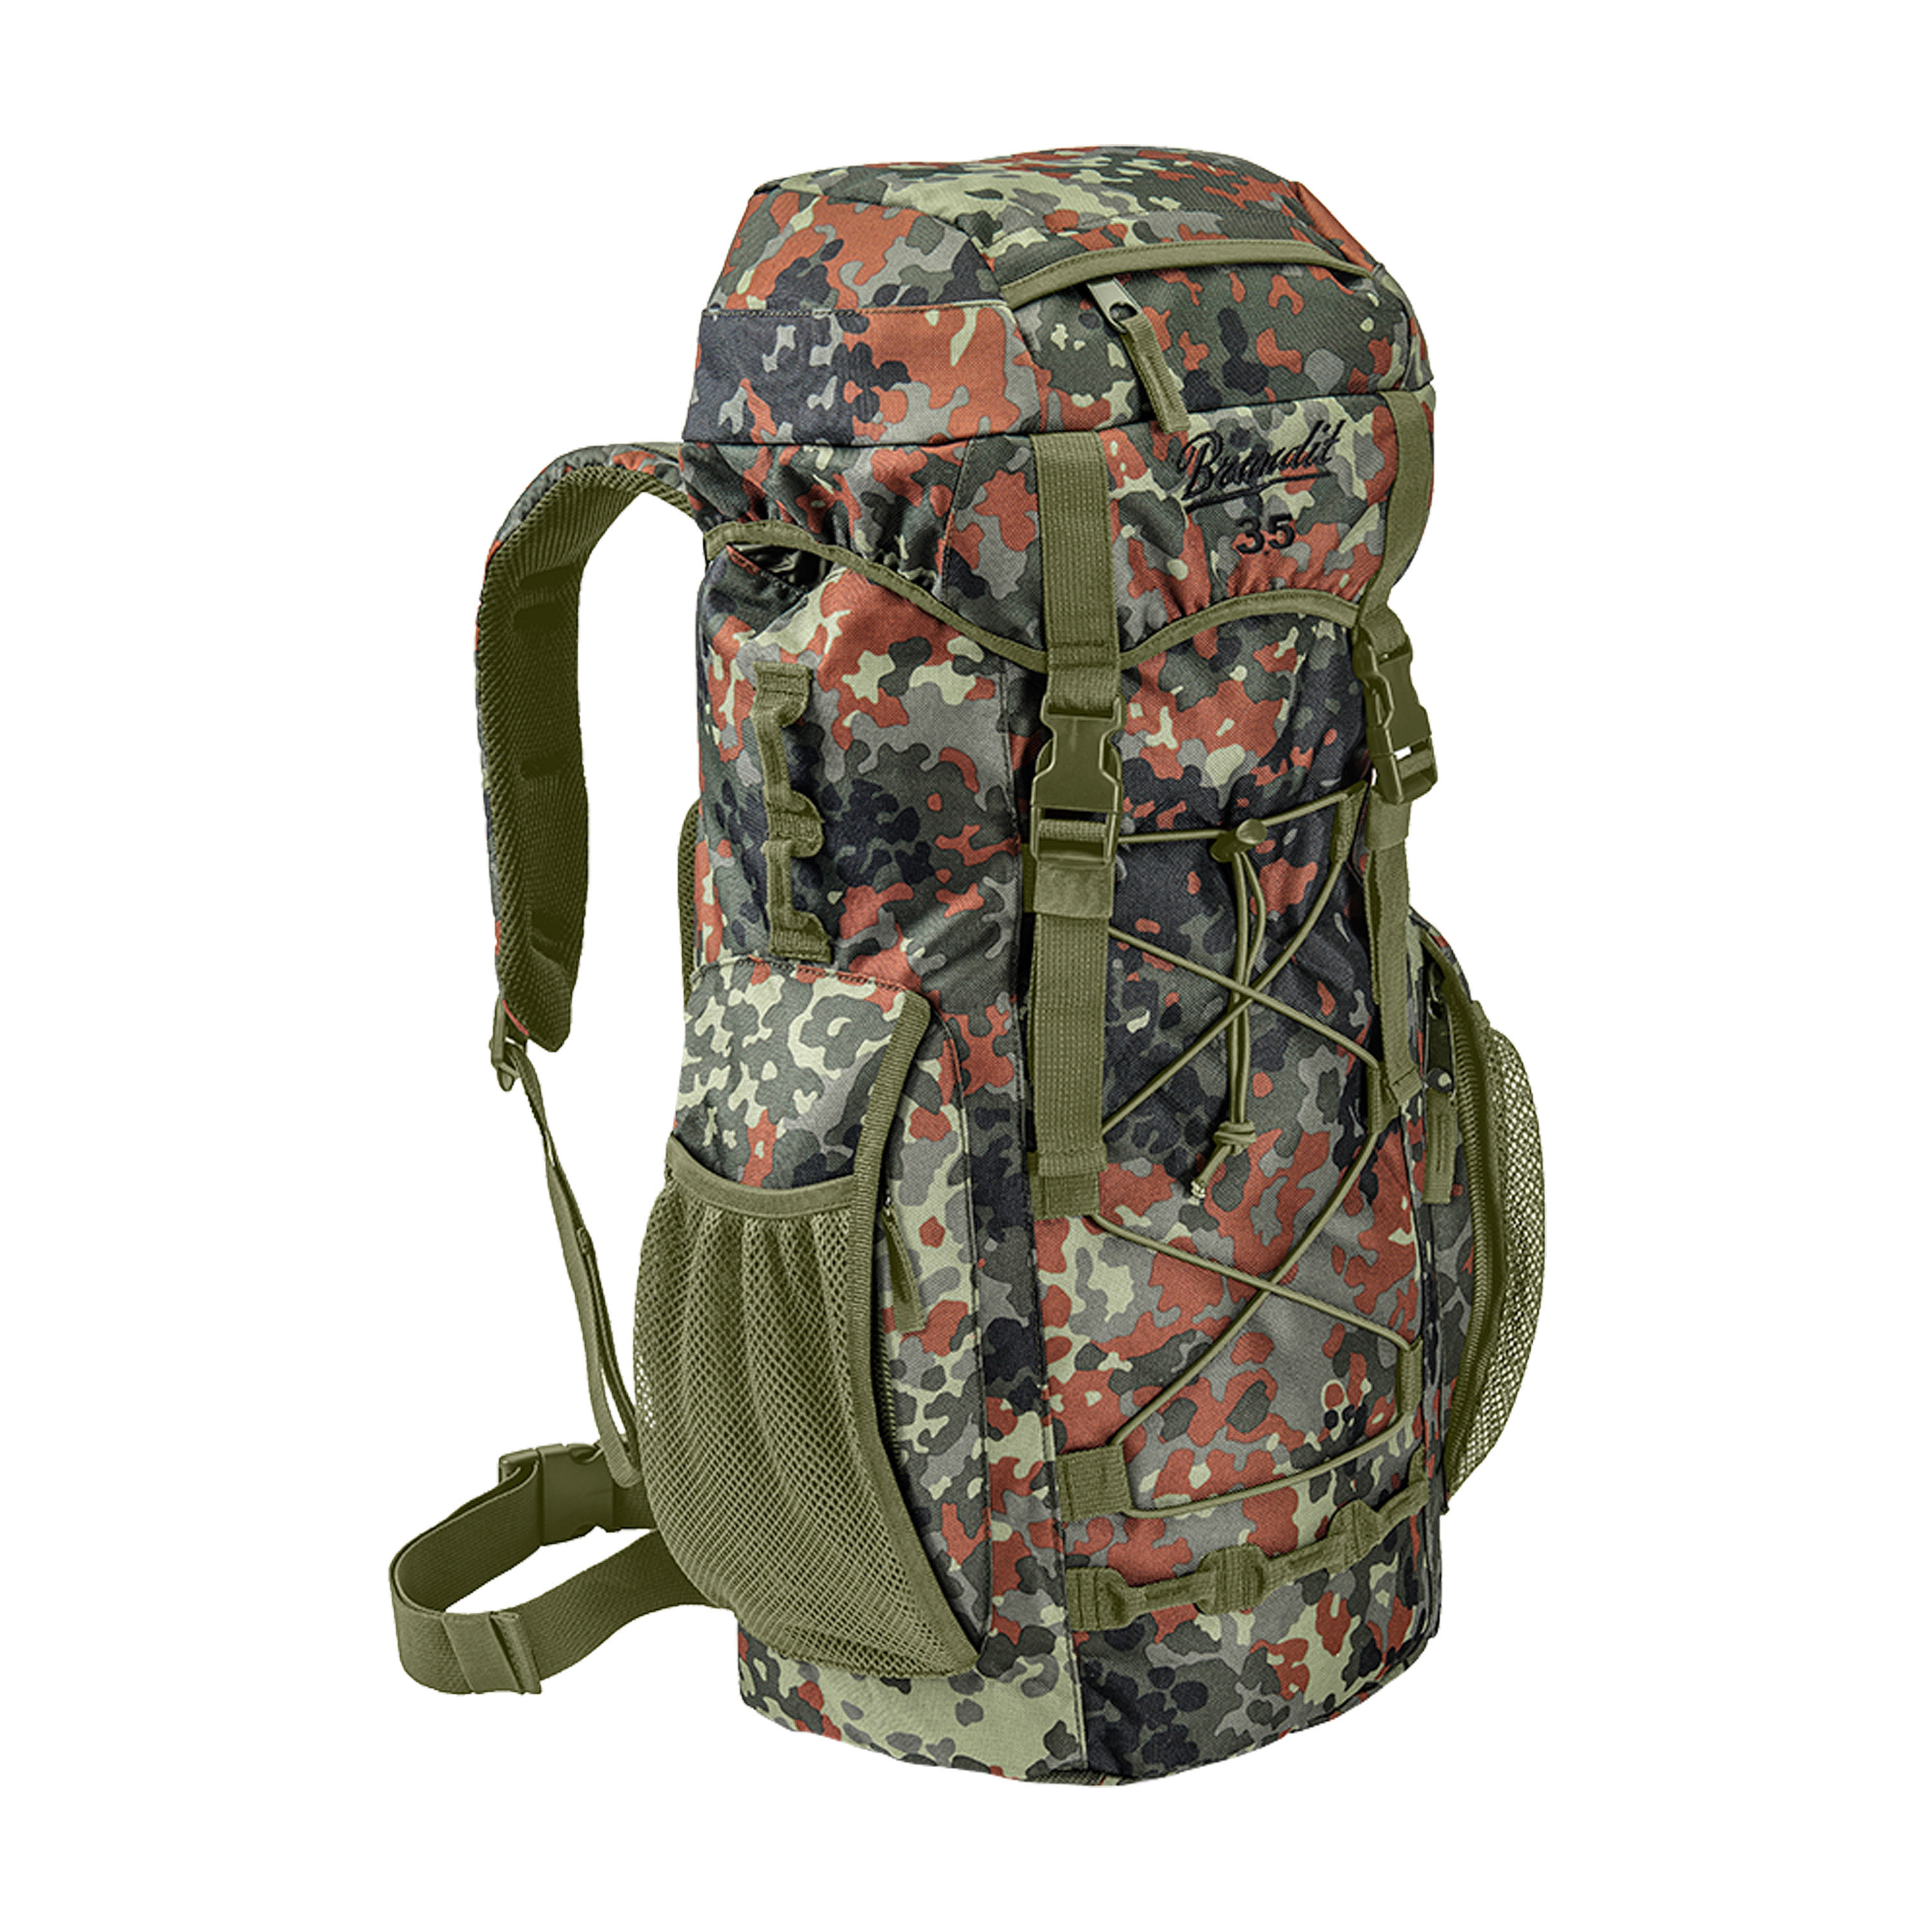 Brandit Aviator Backpack 35 Liter flecktarn